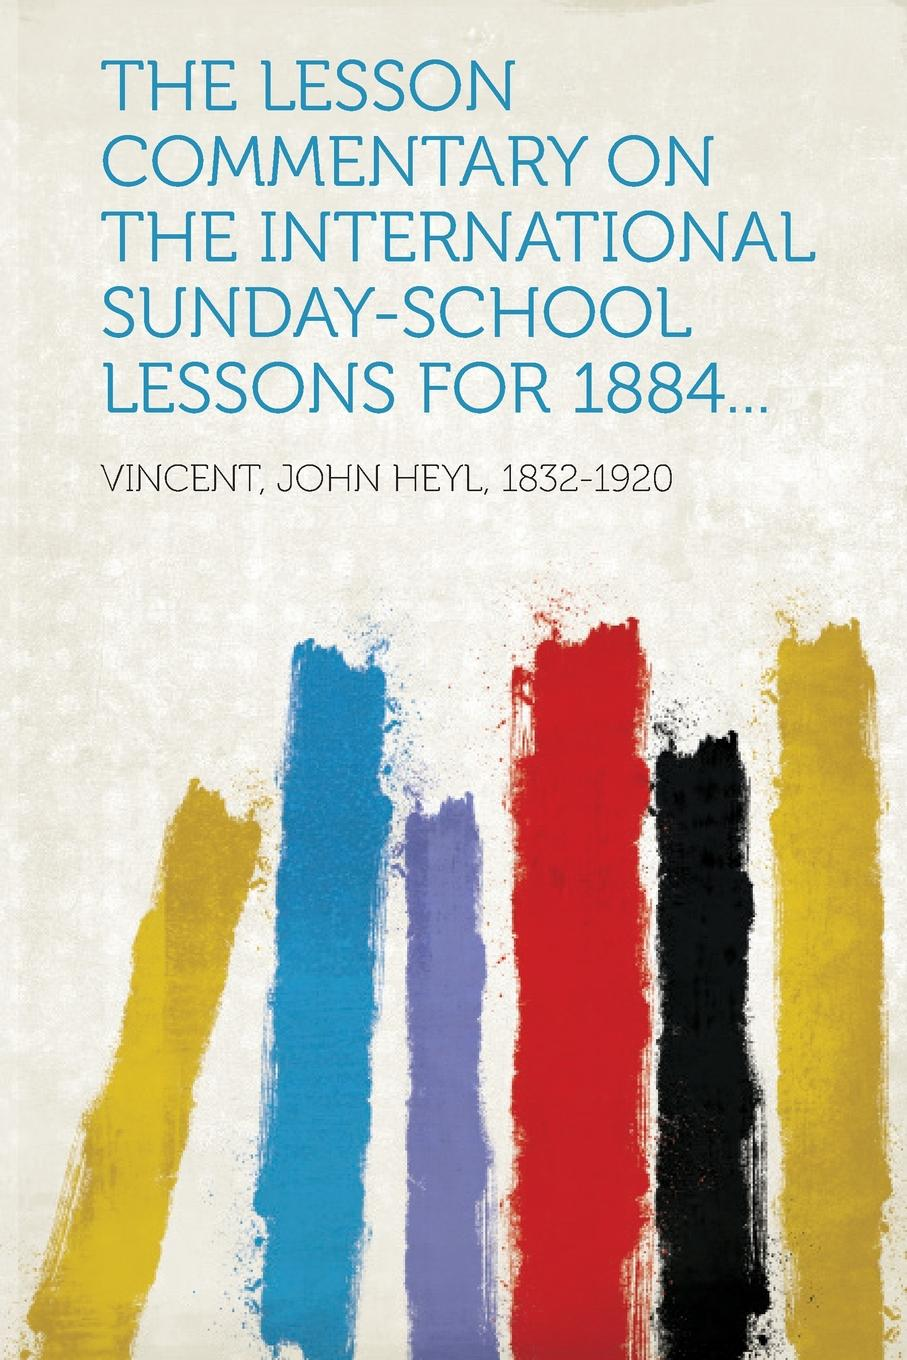 The Lesson Commentary on the International Sunday-School Lessons for 1884...